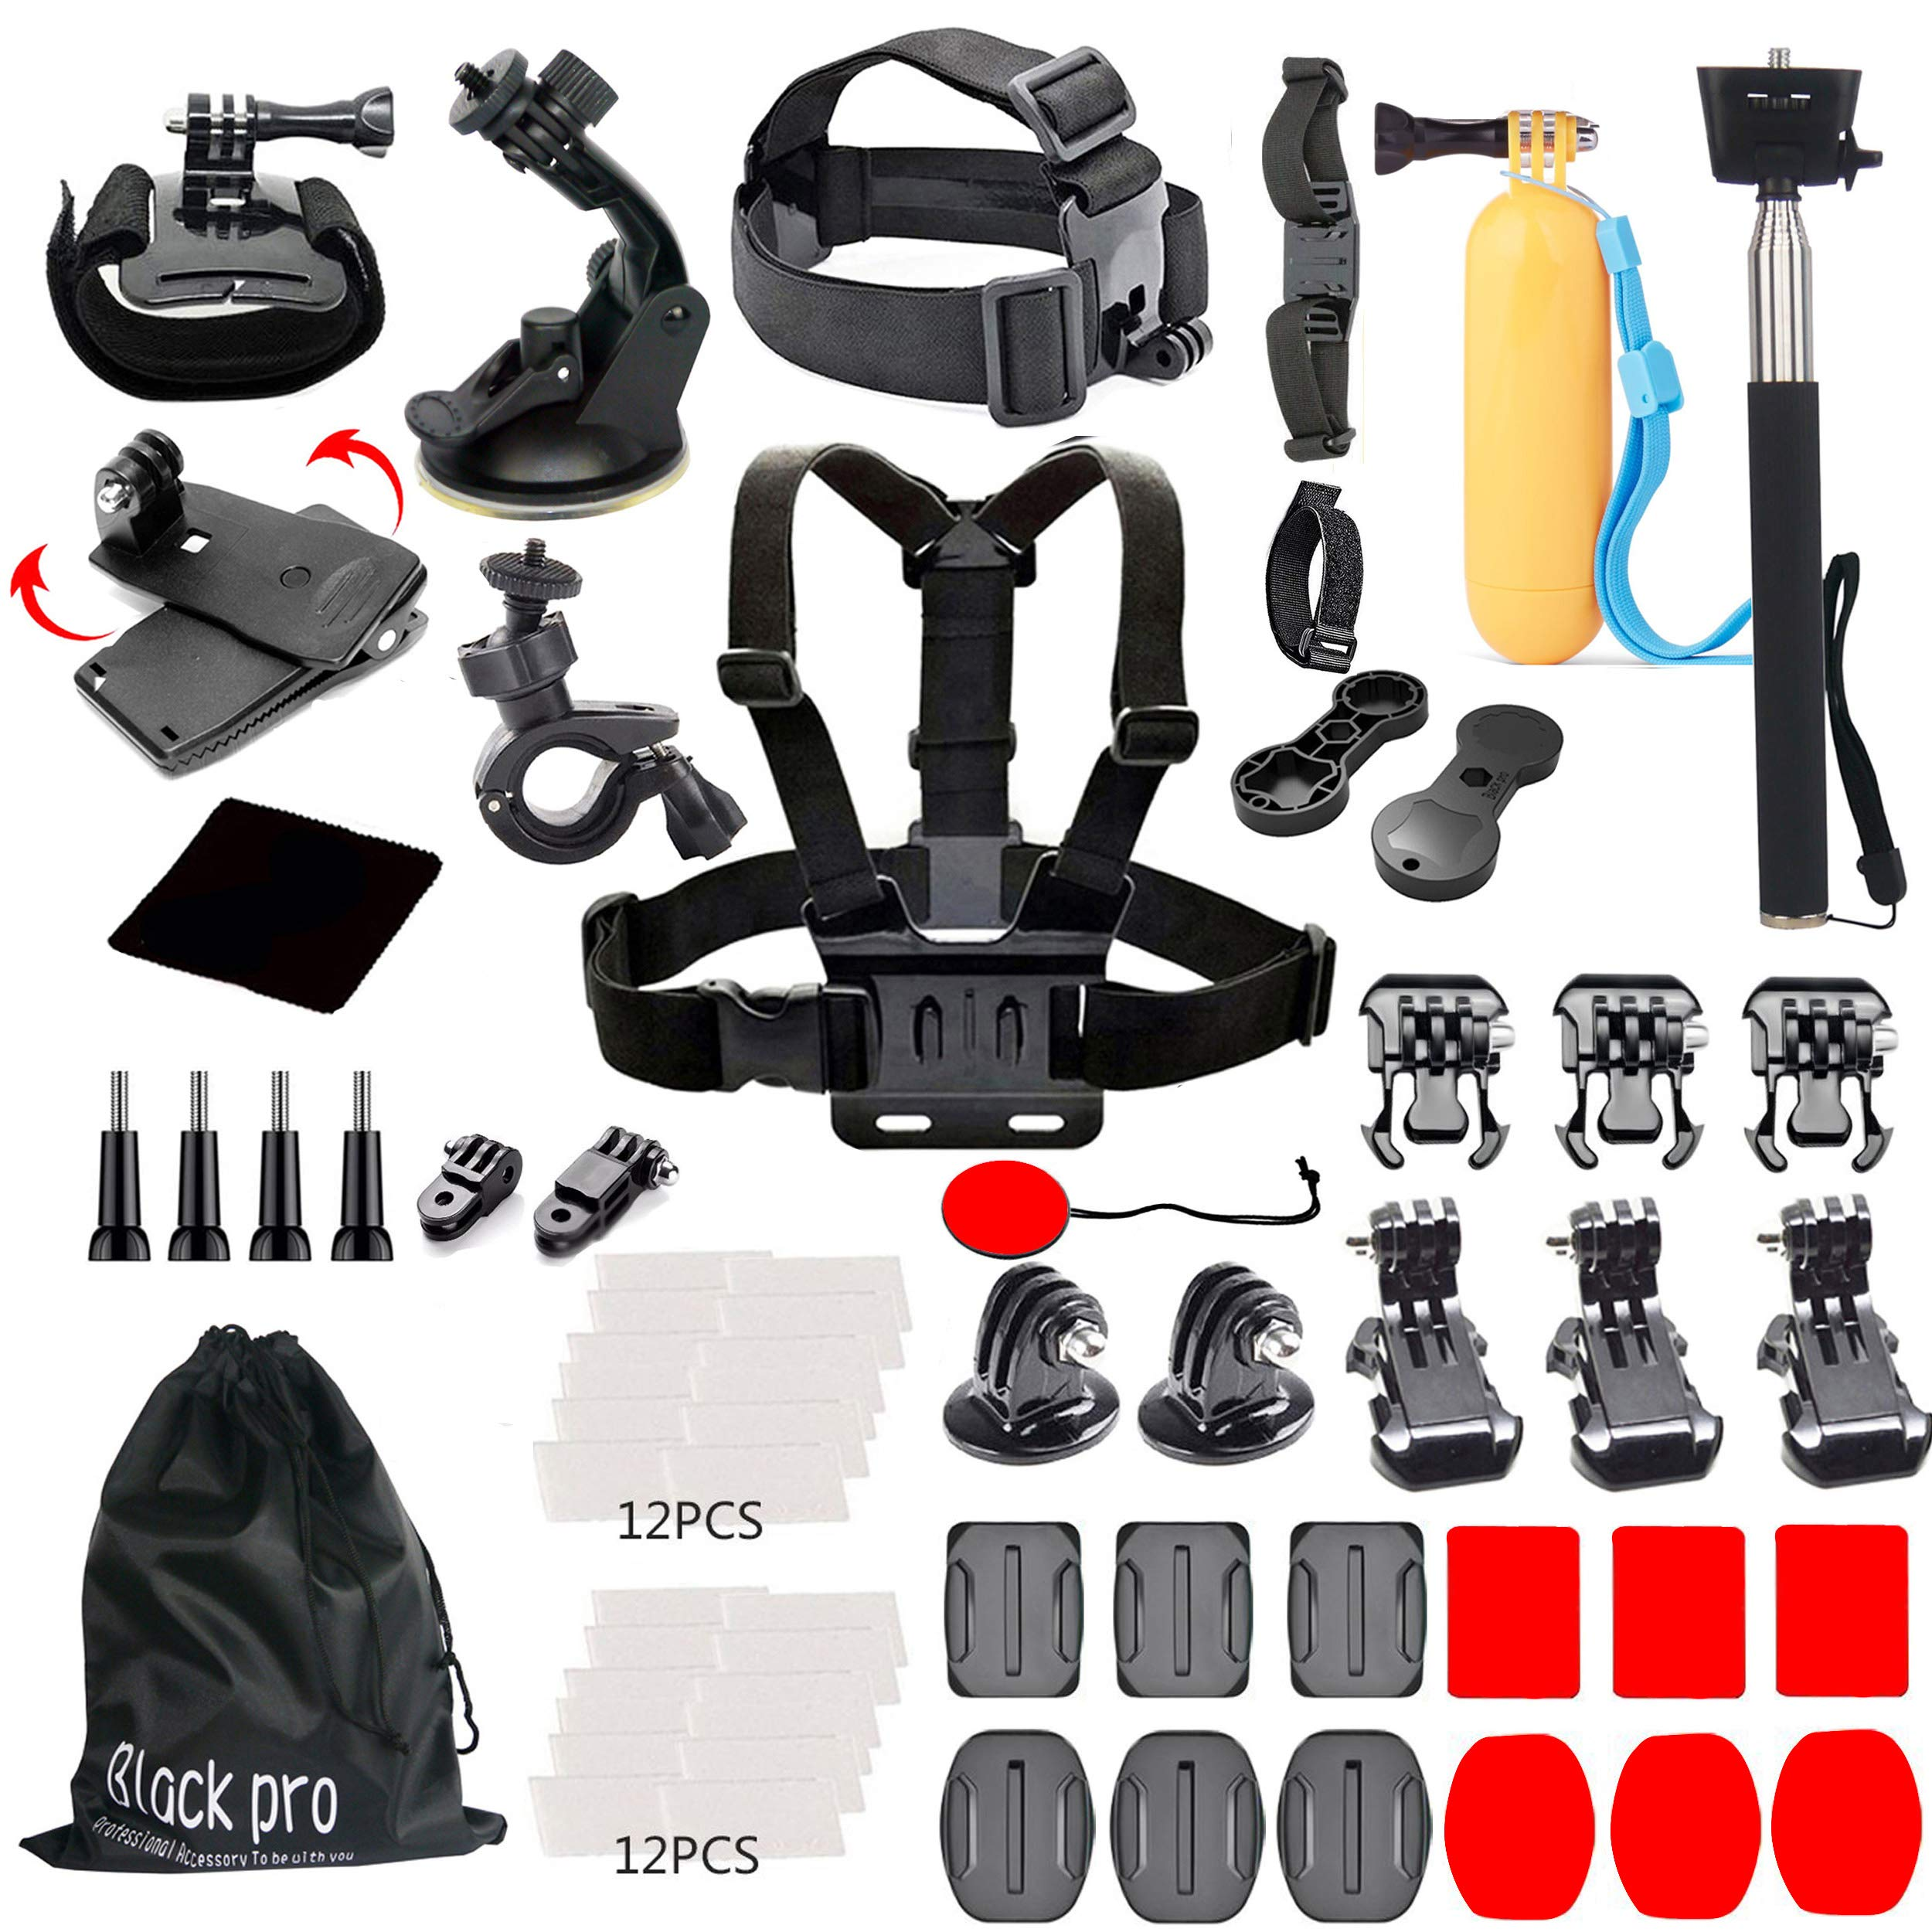 Black Pro Basic Common Outdoor Sports Kit for GoPro Hero 6/GoPro Fusion/HERO 5/Session5/4/3+/3/2/1 SJ4000/5000/6000/AKASO/APEMAN/DBPOWER/And Sony Sports DV and More by Black pro